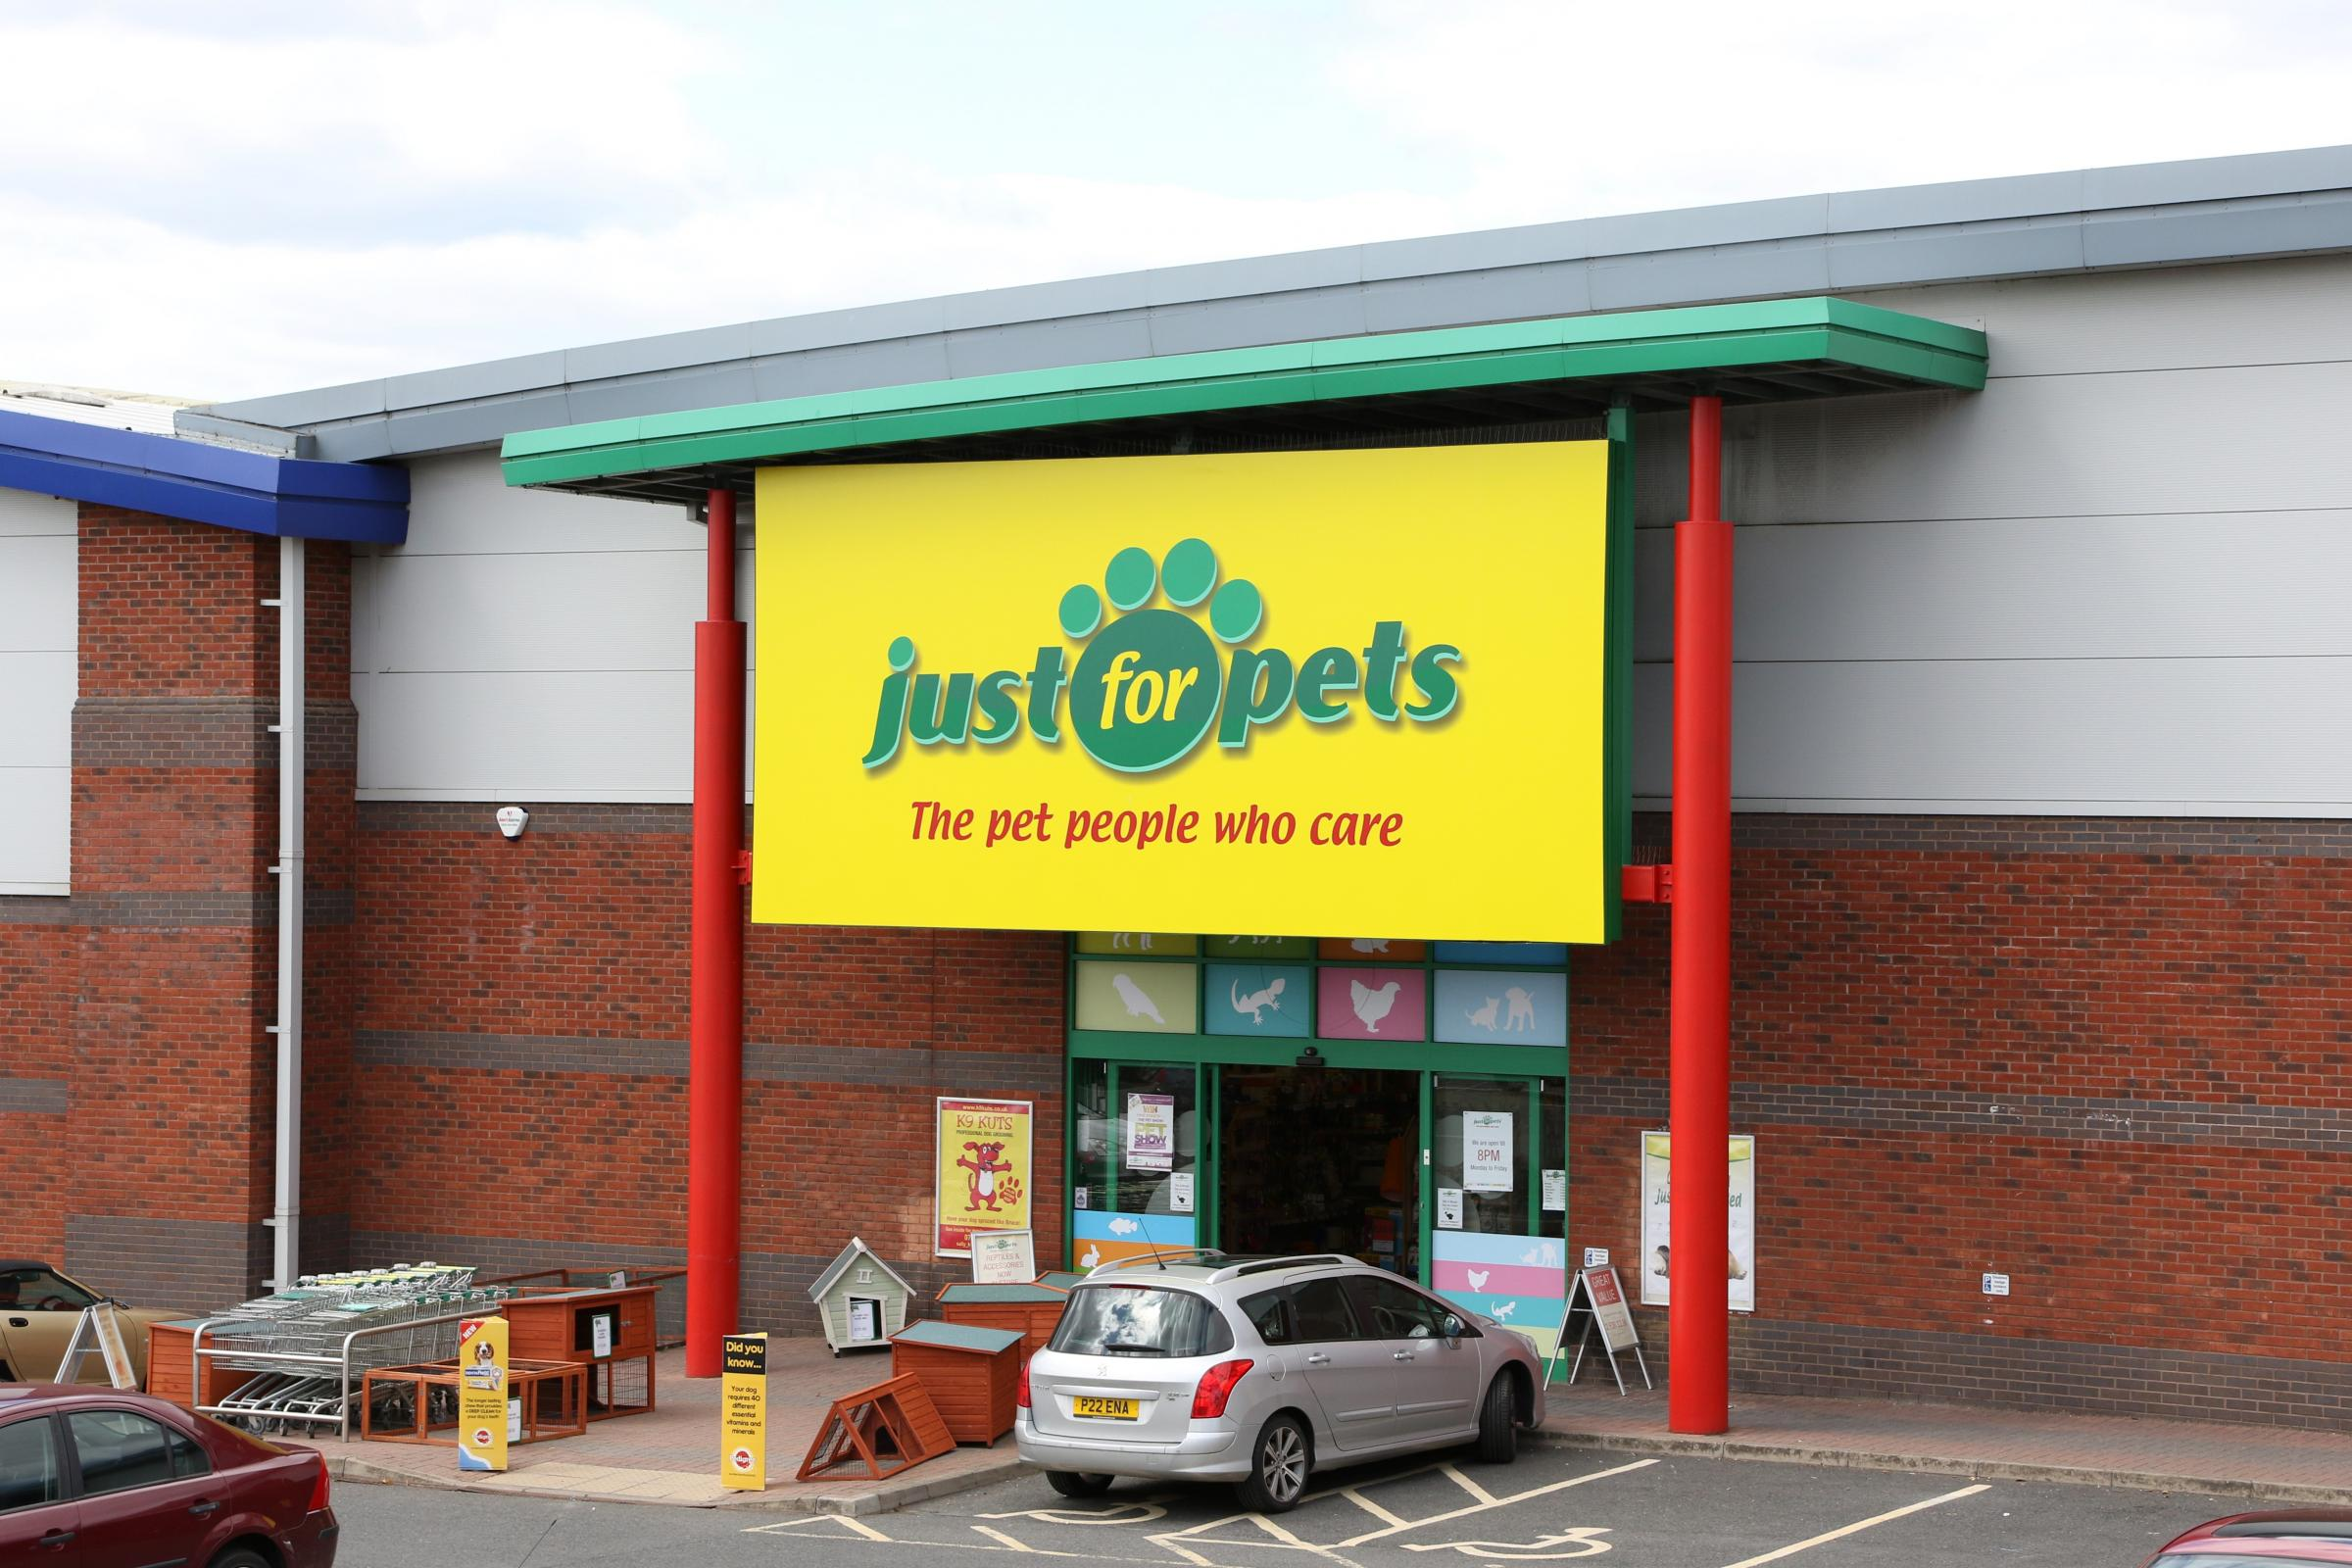 Worcester - Just for Pets store on Shrub Hill Retail Park.